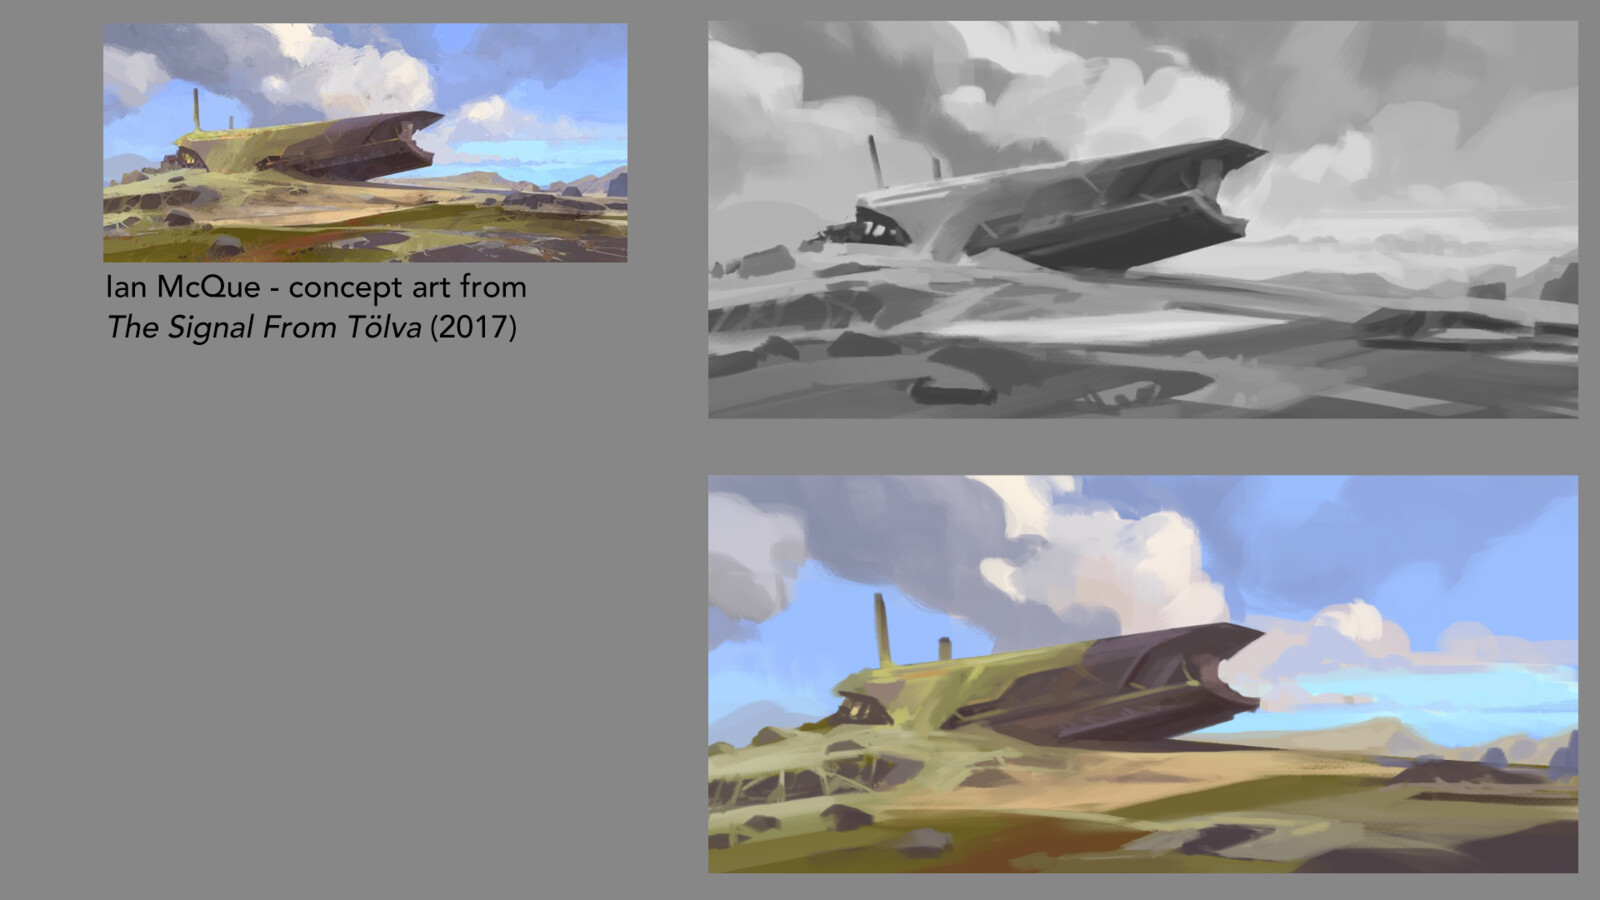 Grayscale/color study of concept art from The Signal From Tölva (2017) by Ian McQue